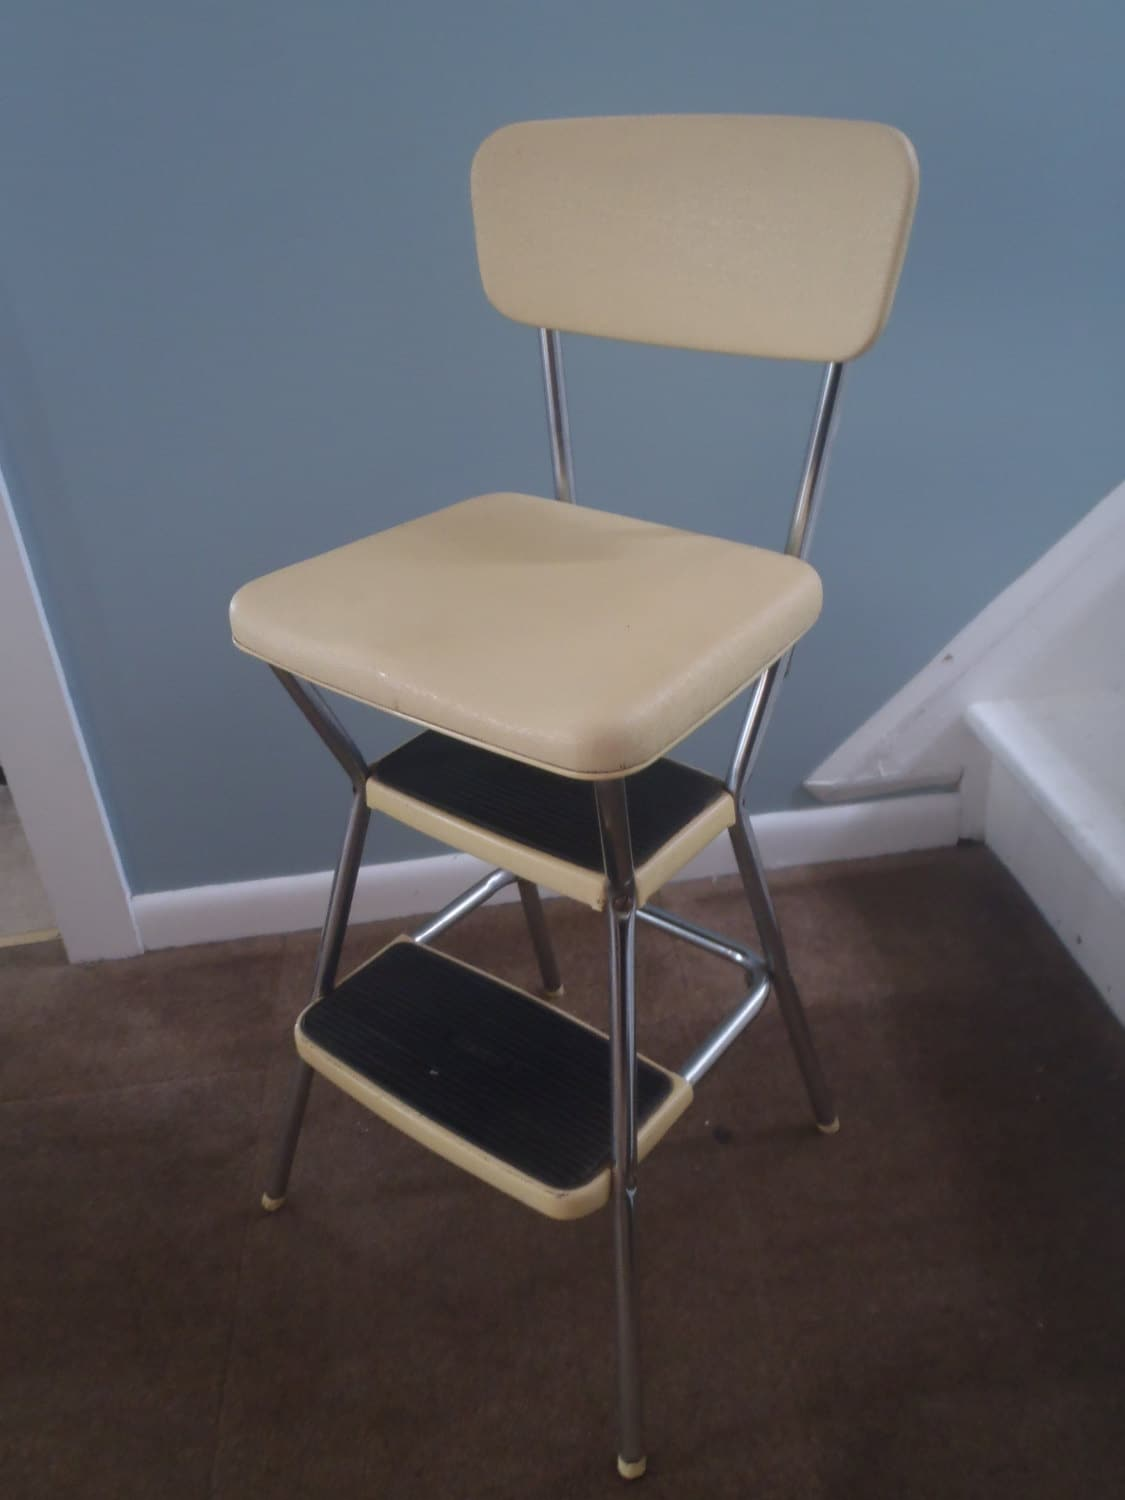 vintage cosco step stool chair imperator works brand gaming yellow kitchen with flip up